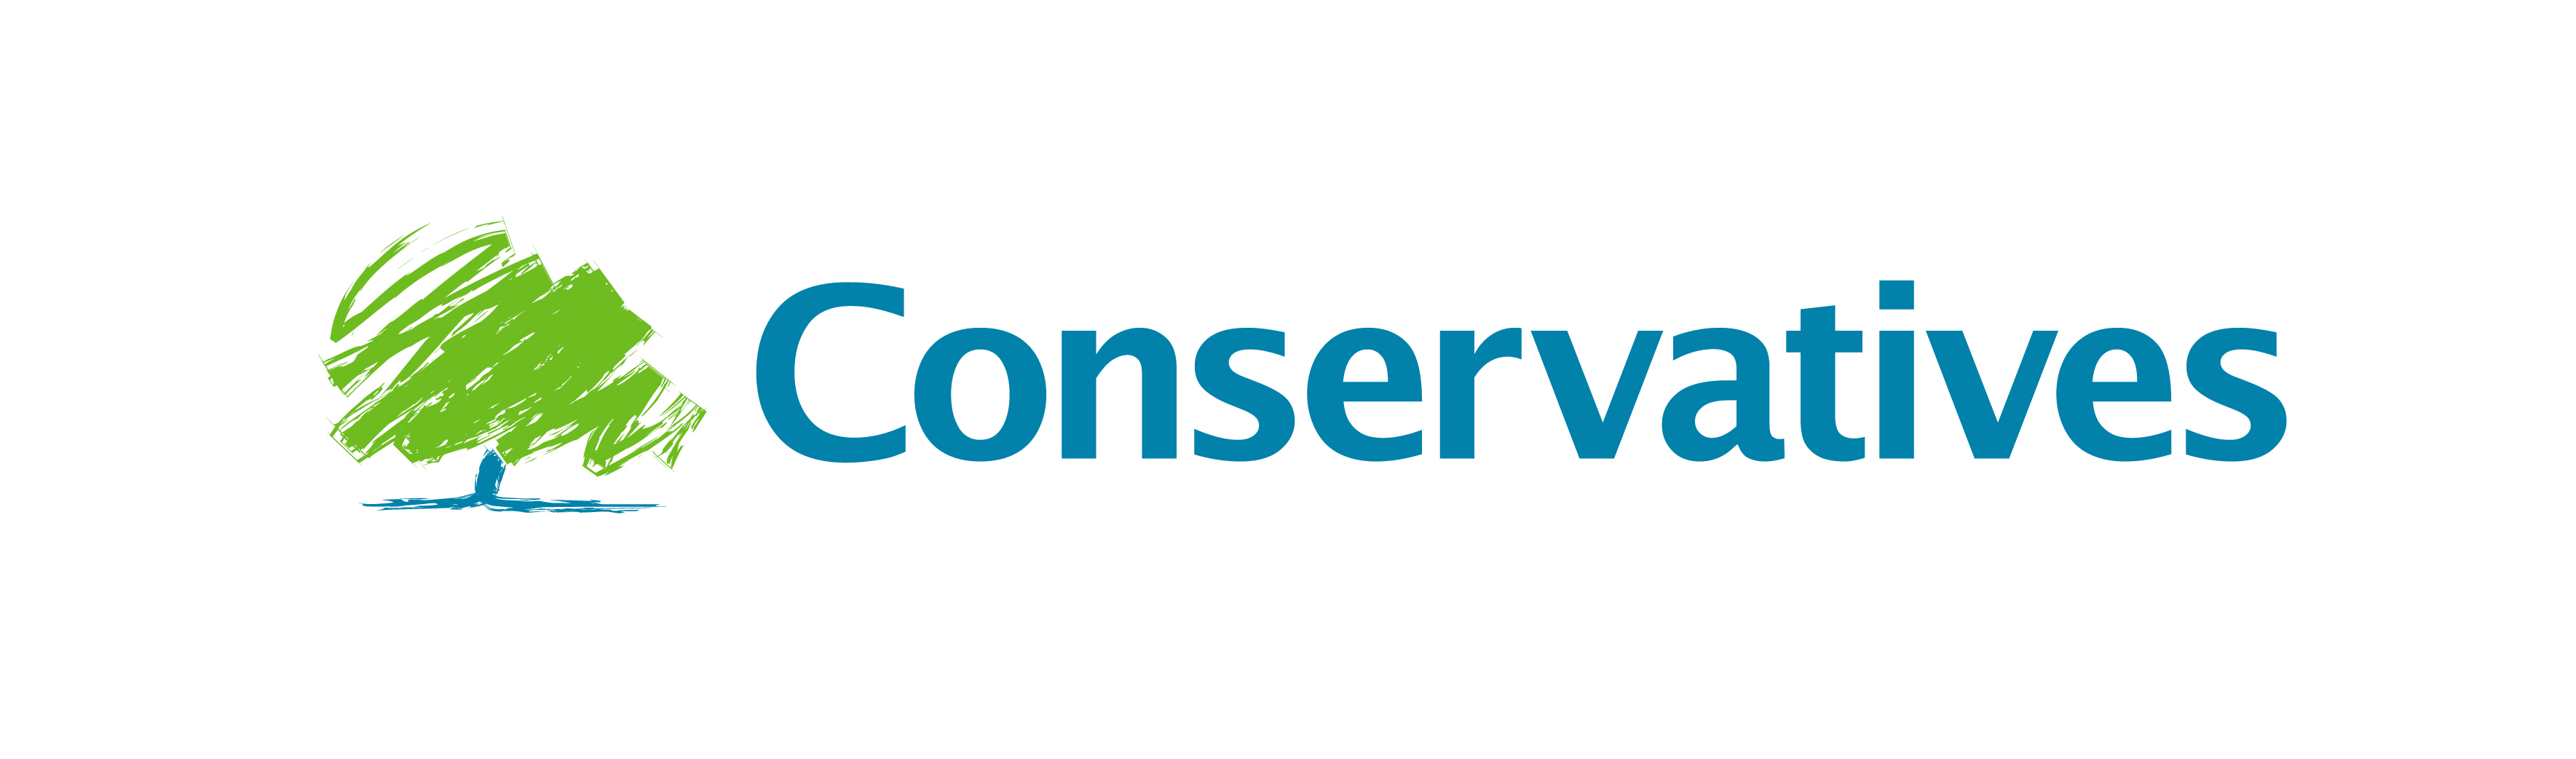 #GE2015 Social Media Battle – The Conservatives